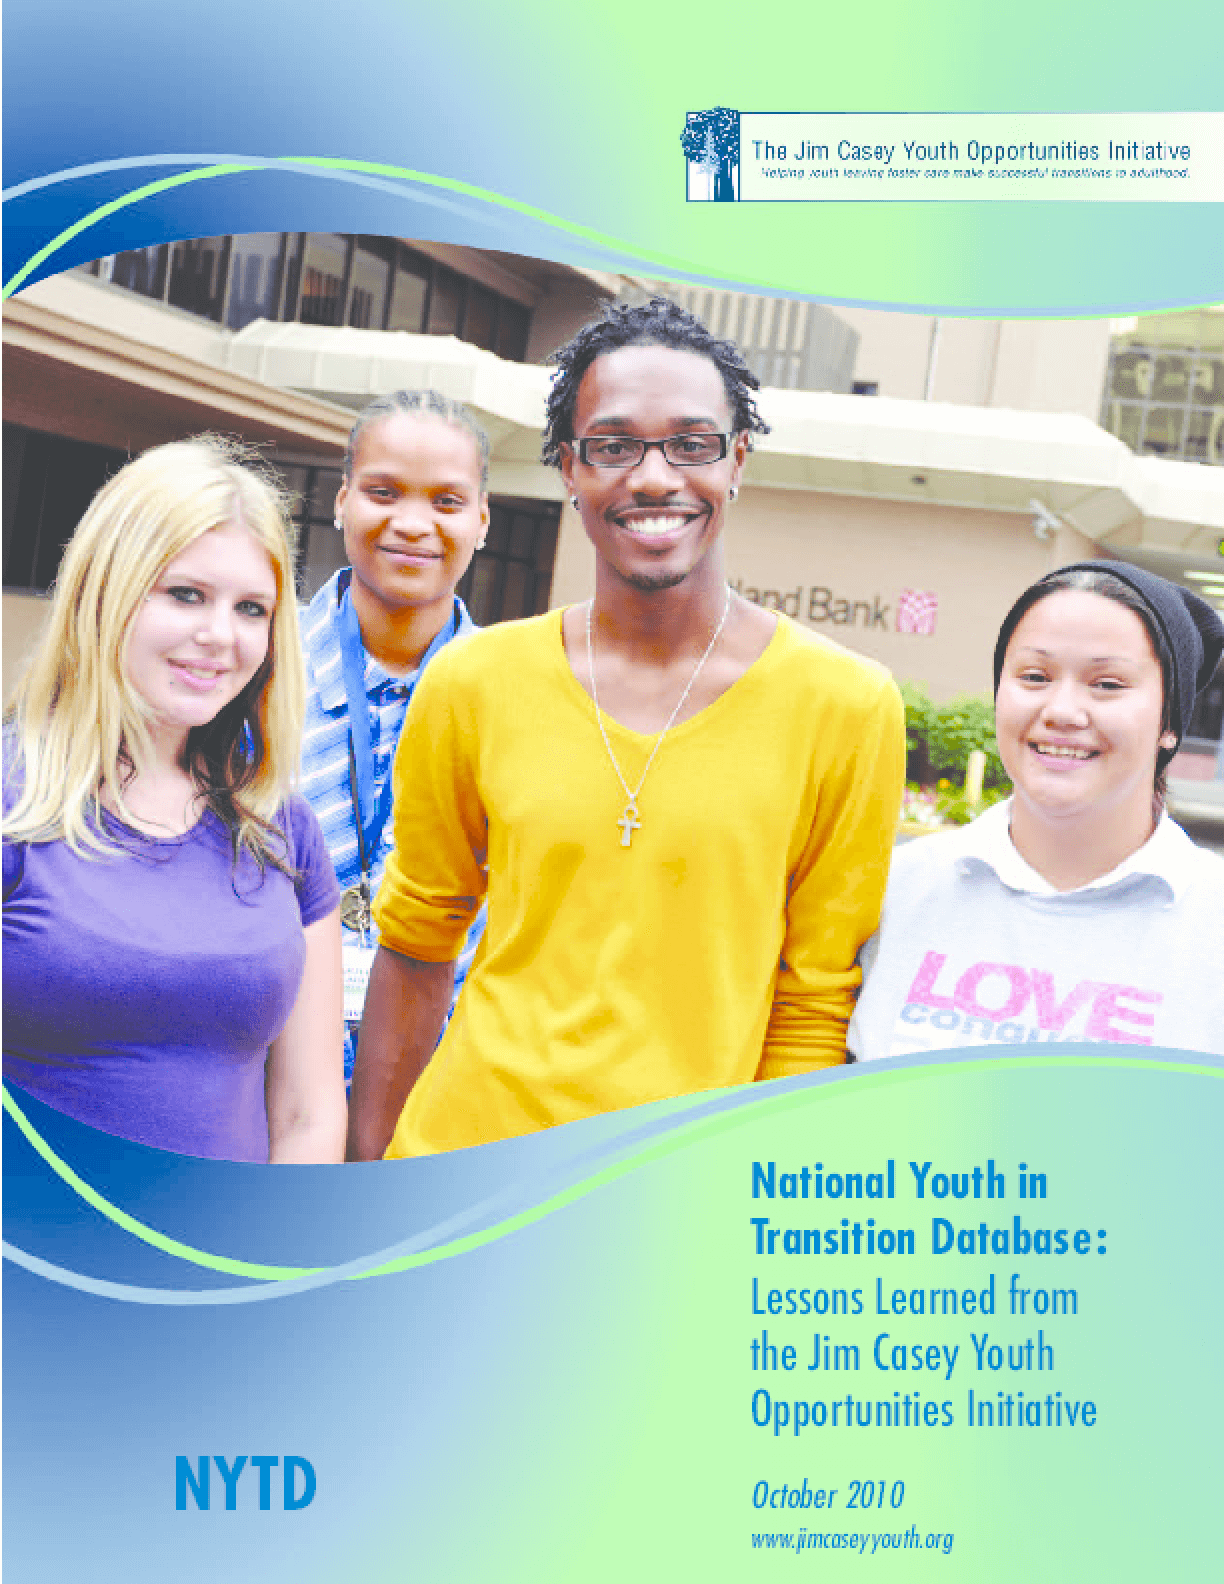 The National Youth in Transition Database: Lessons Learned from the Jim Casey Youth Opportunities Initiative